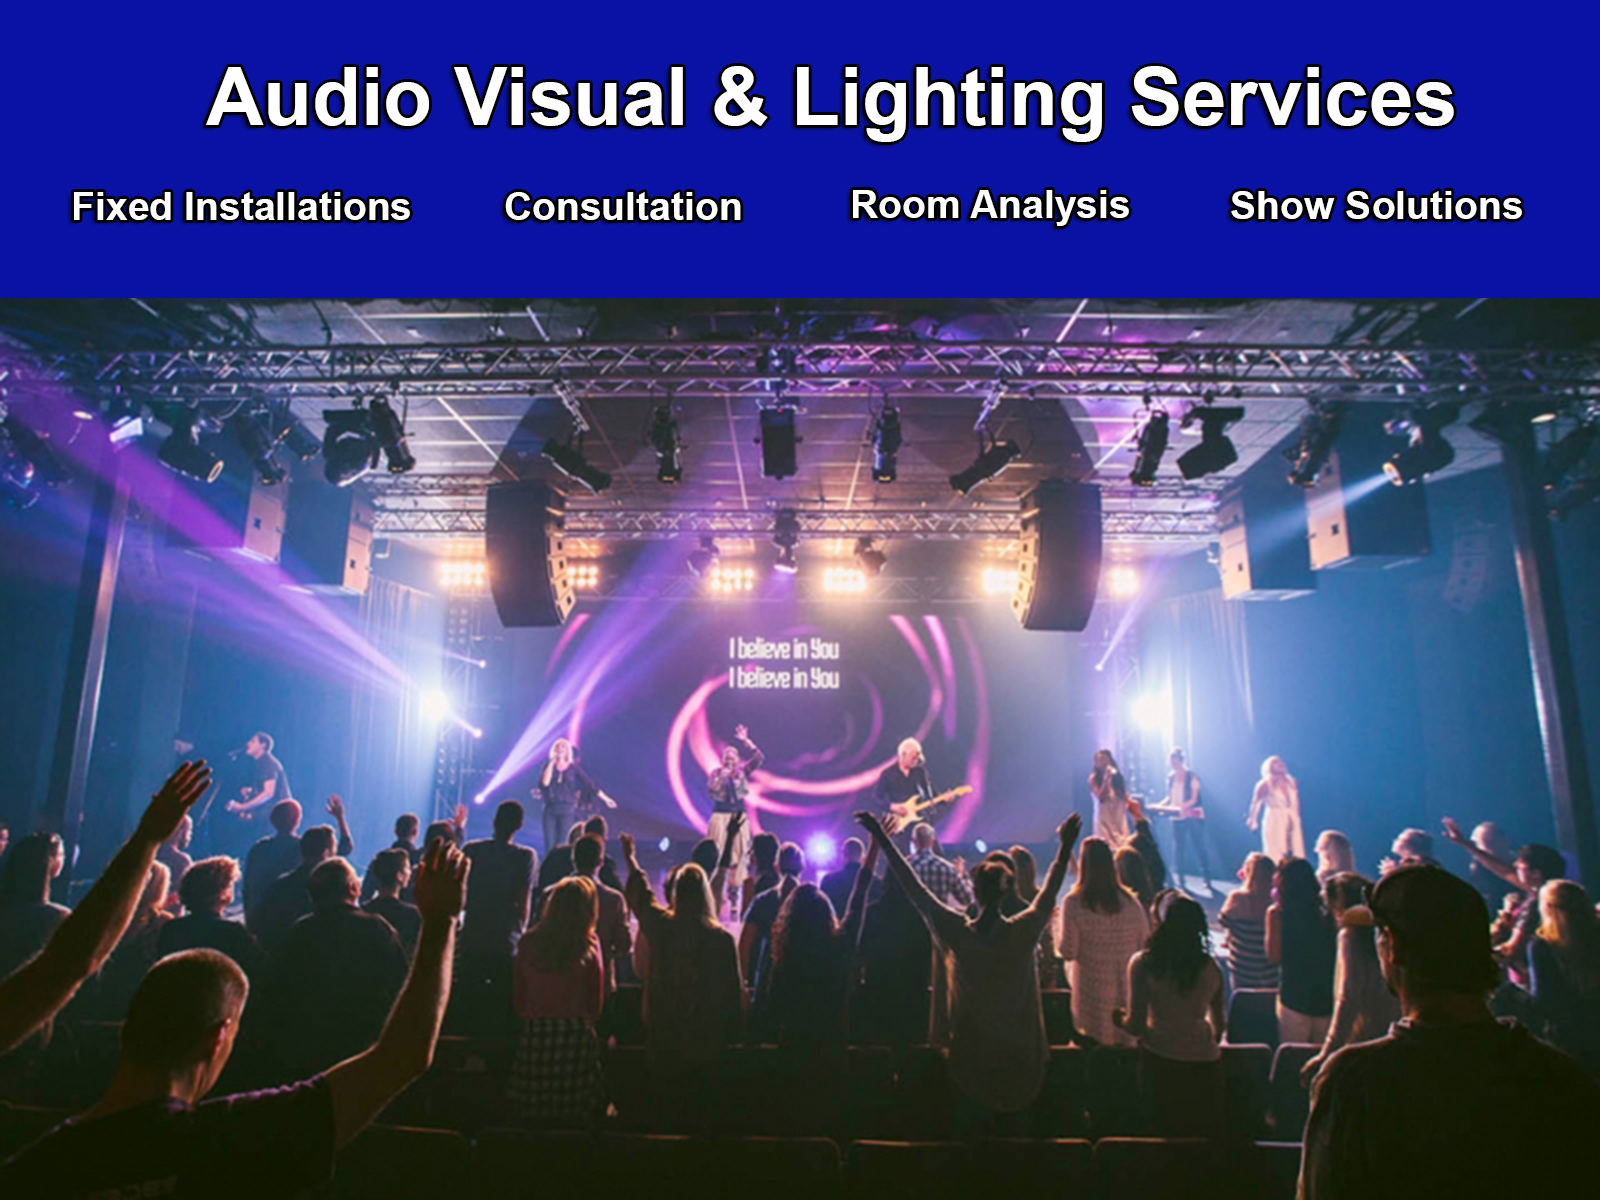 audio-visuall-lighting-services-effects-added-edit-blue-top-same-color-as-header-1600.jpg